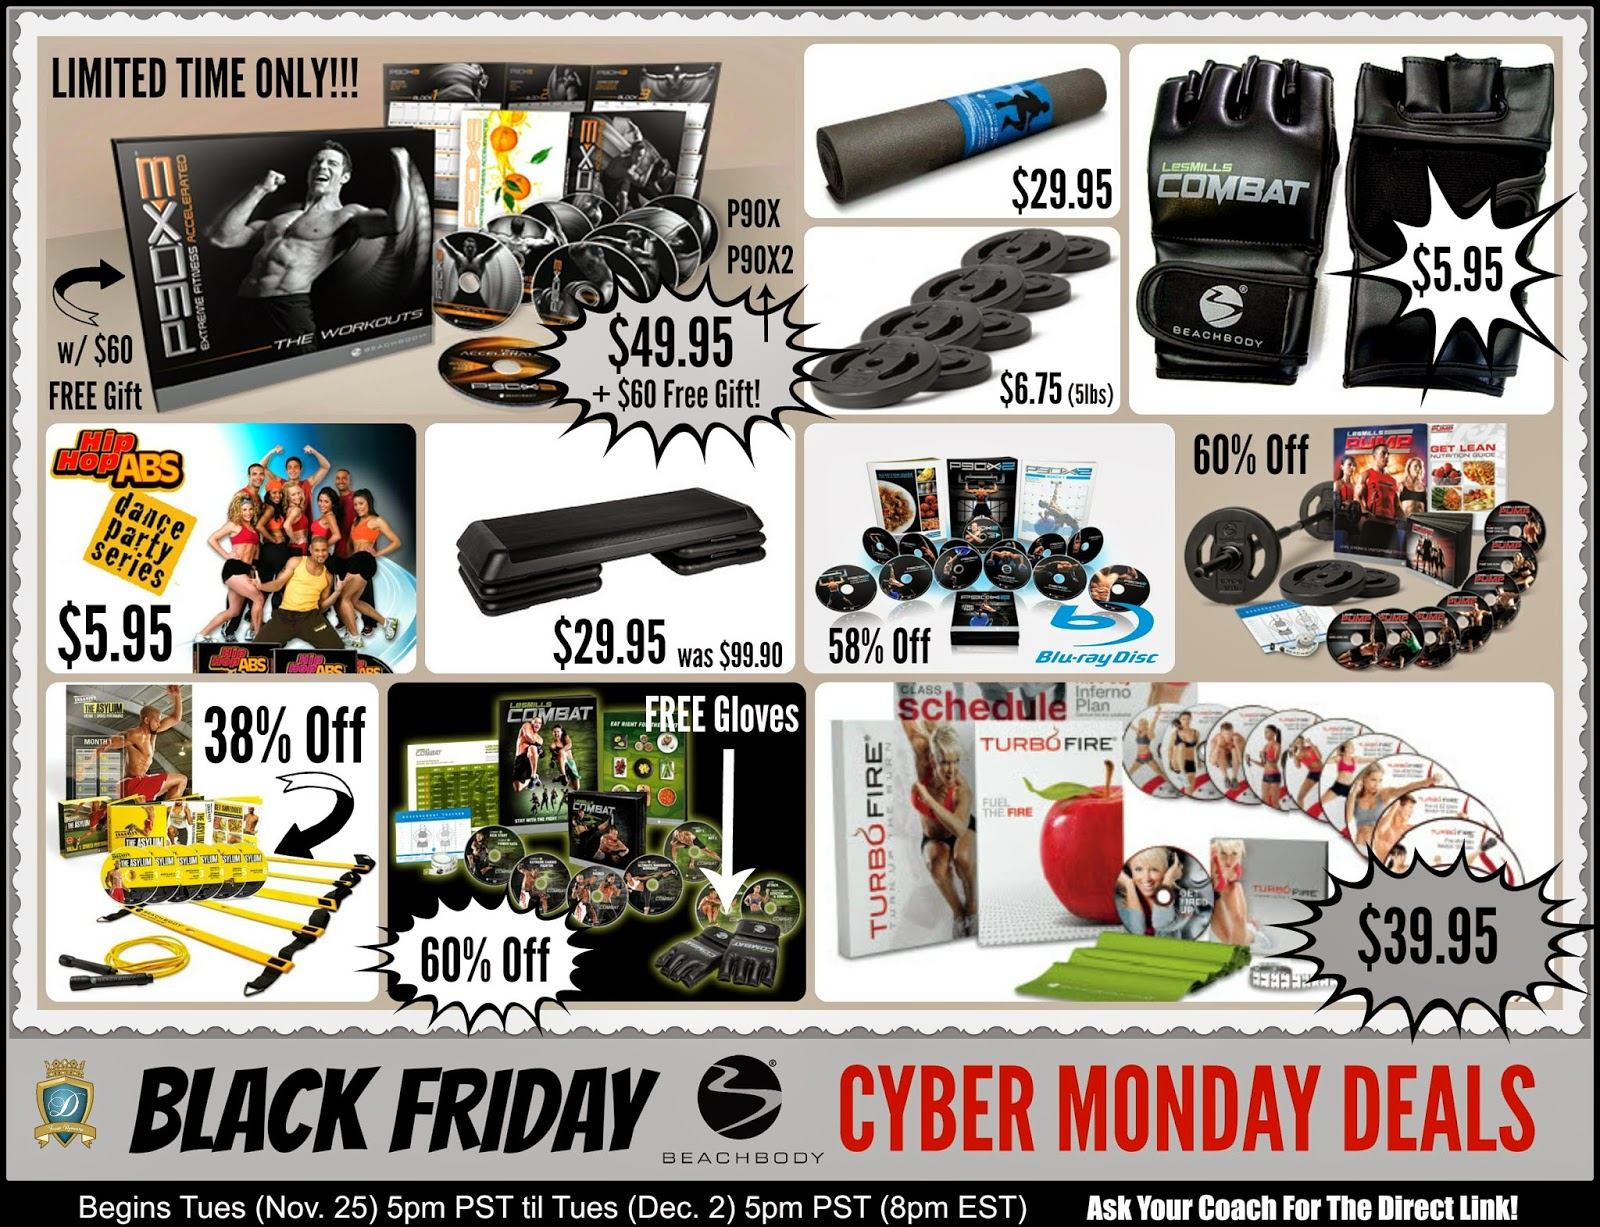 Black Friday and Cyber Monday Deals Beachbody 2014